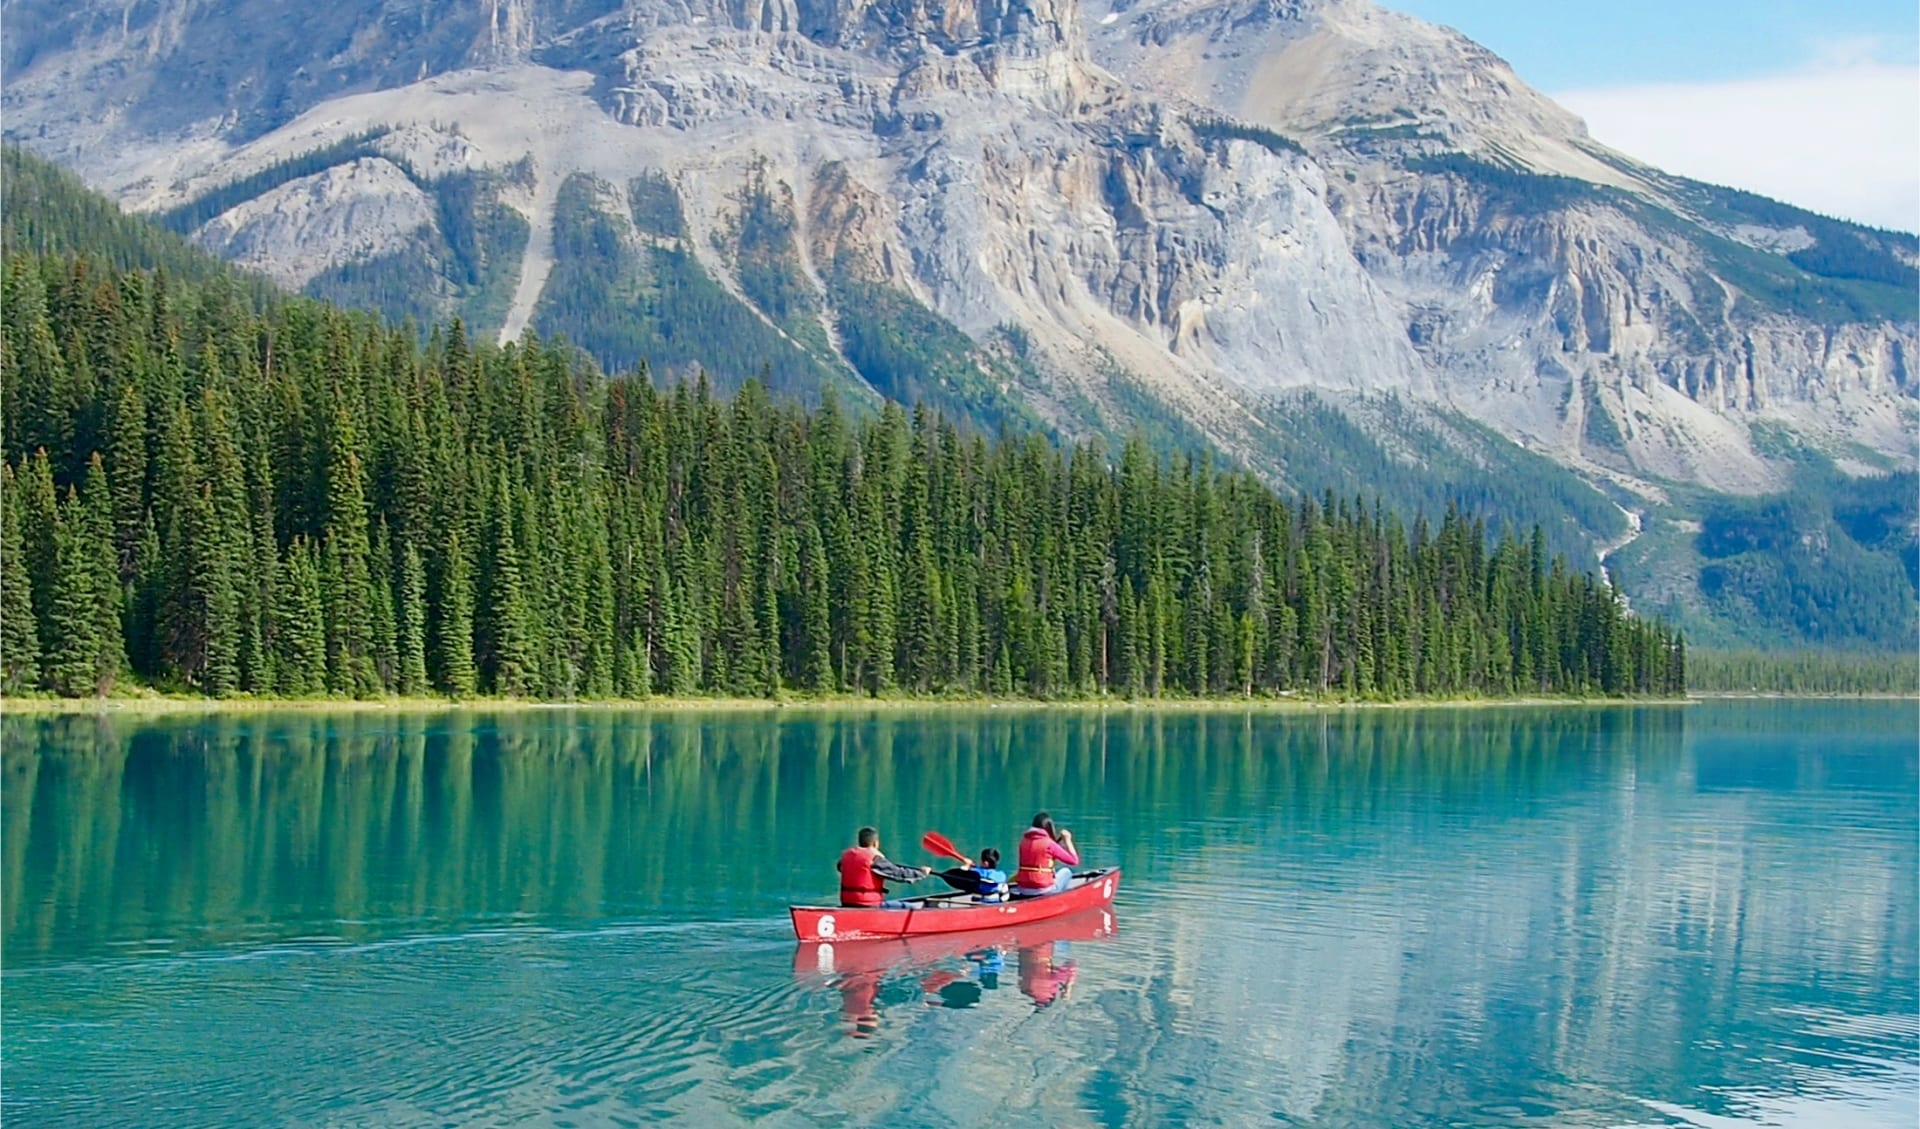 Family on a Kanu tour in Emerald Lake